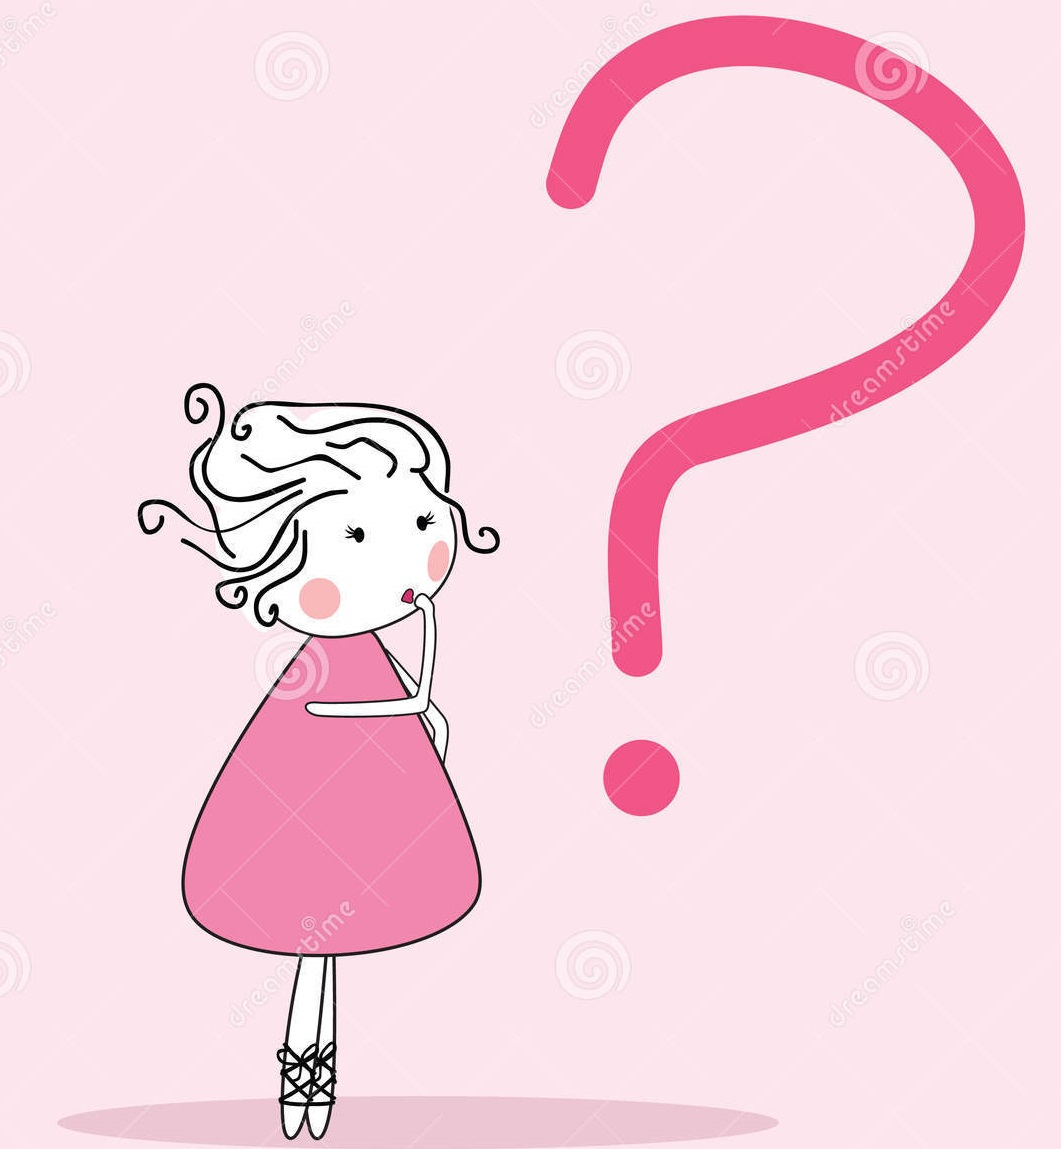 http://www.dreamstime.com/stock-photos-girl-question-image8895493